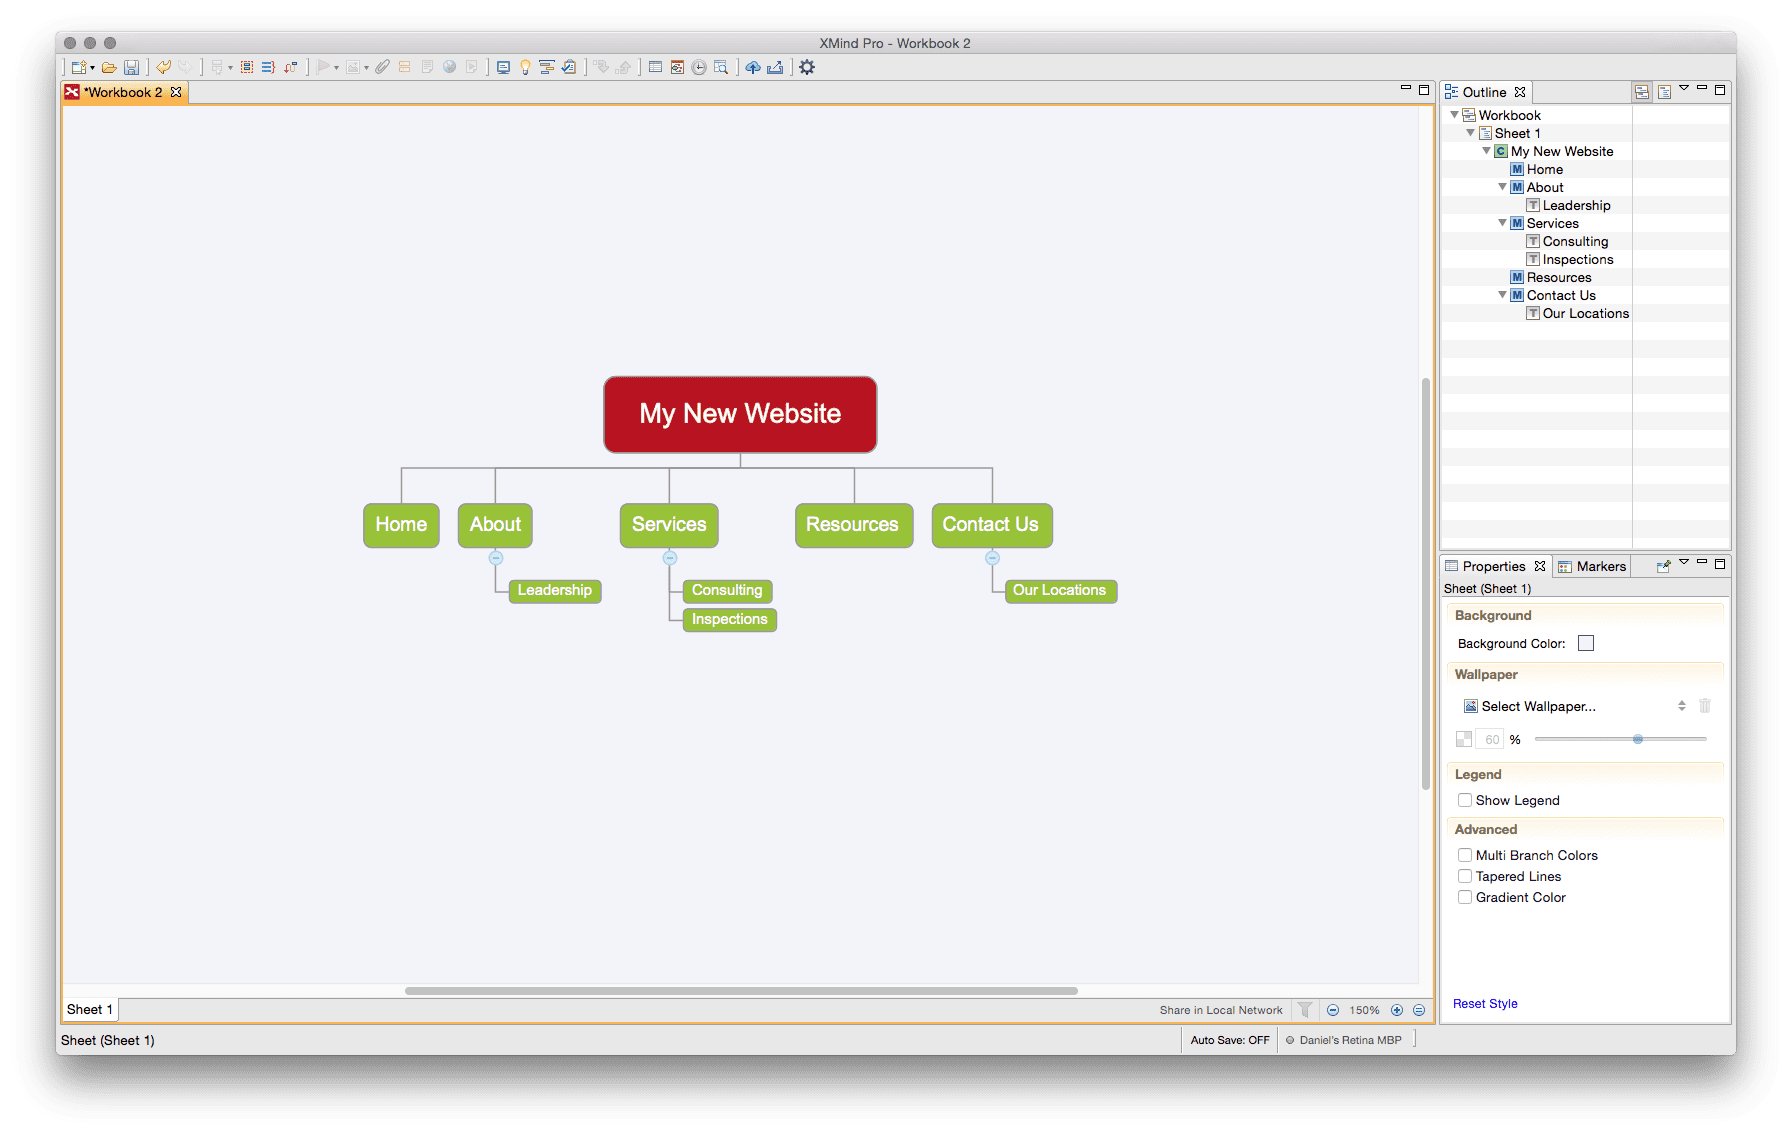 XMind can be an useful tool for building your sitemap.